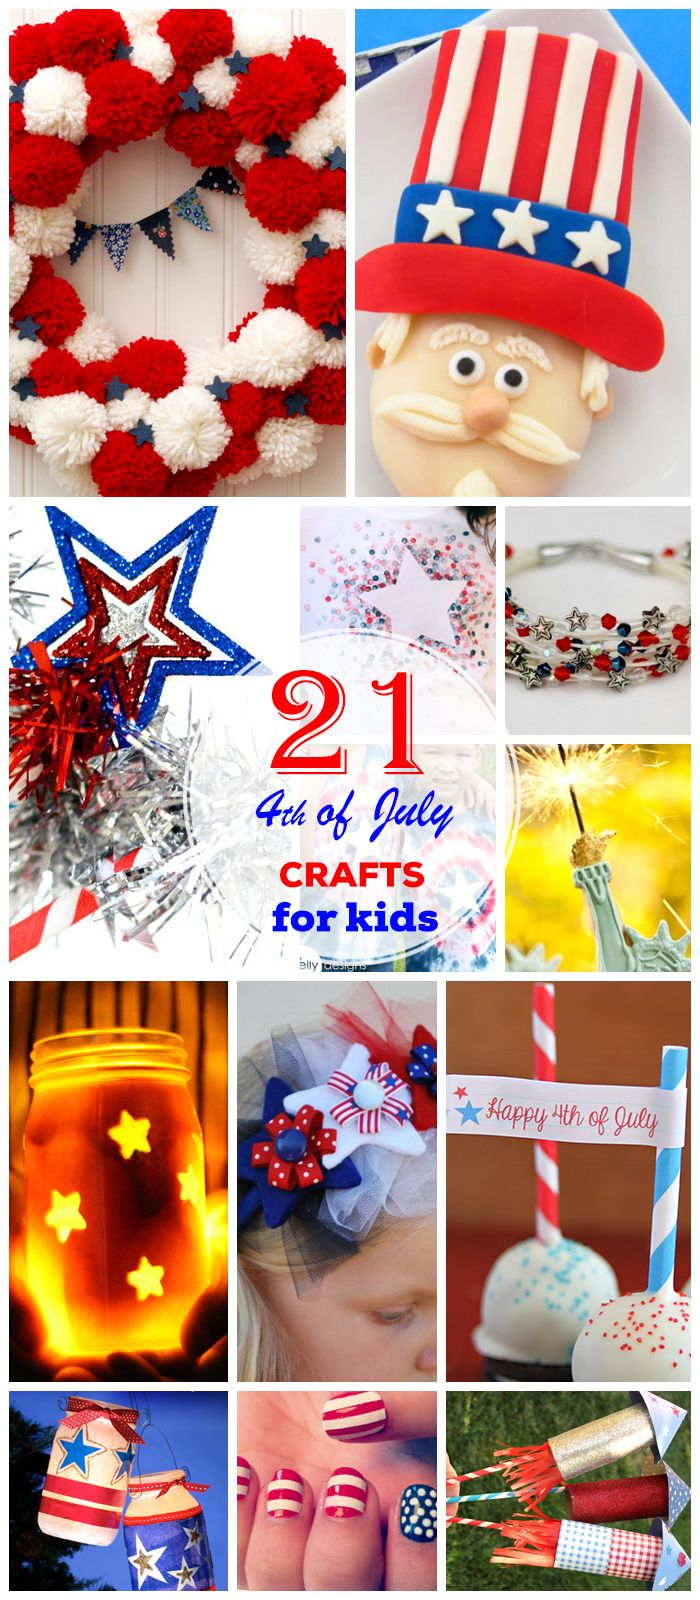 Click Pic for 21 DIY 4th of July Crafts for Kids to Make | Easy 4th of July Craft Ideas for Preschoolers